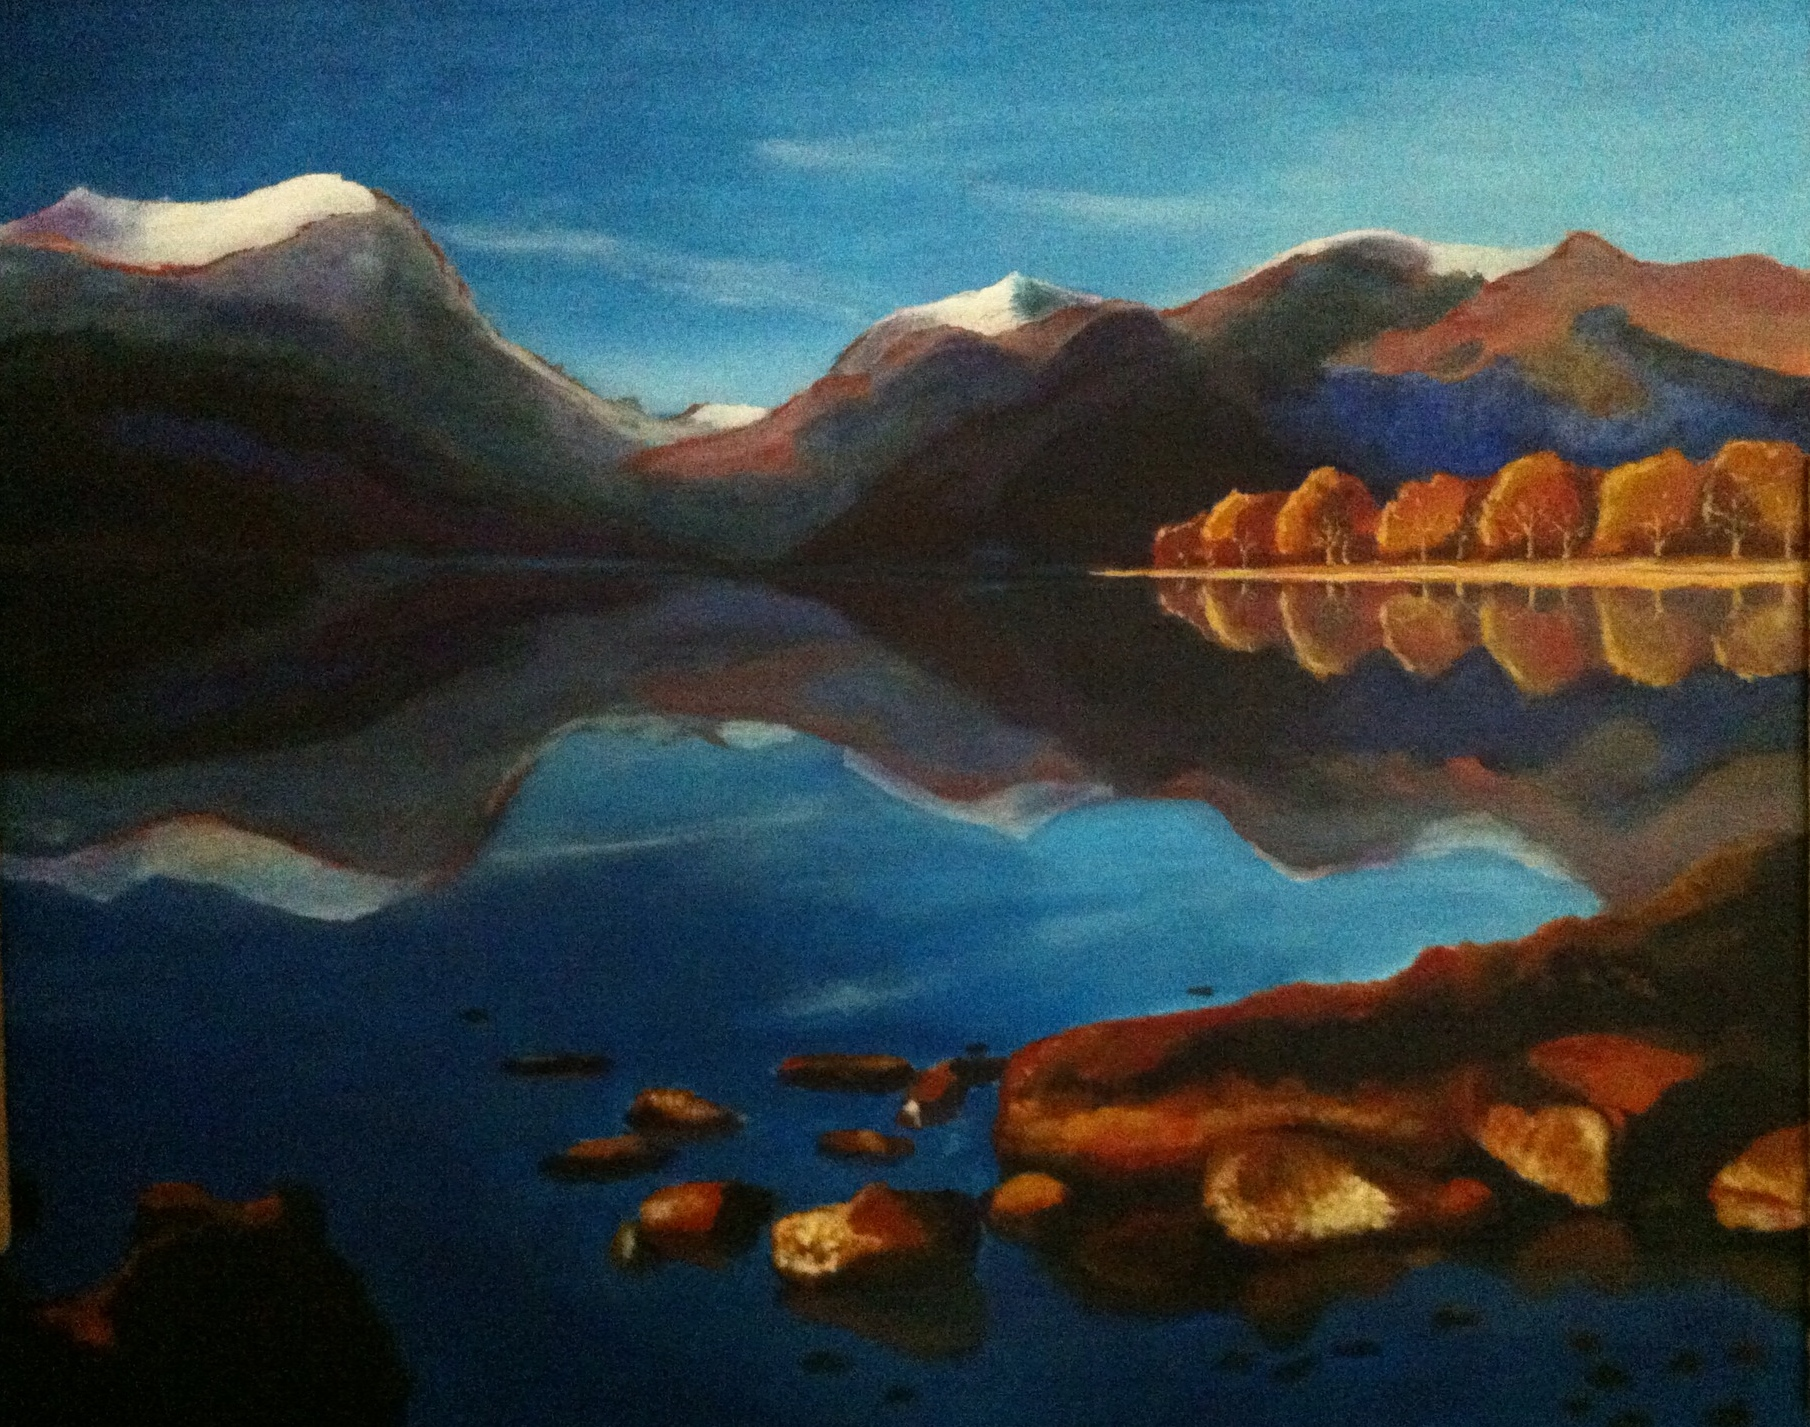 Lake District, acryl op linnen, 50 x 60 cm.